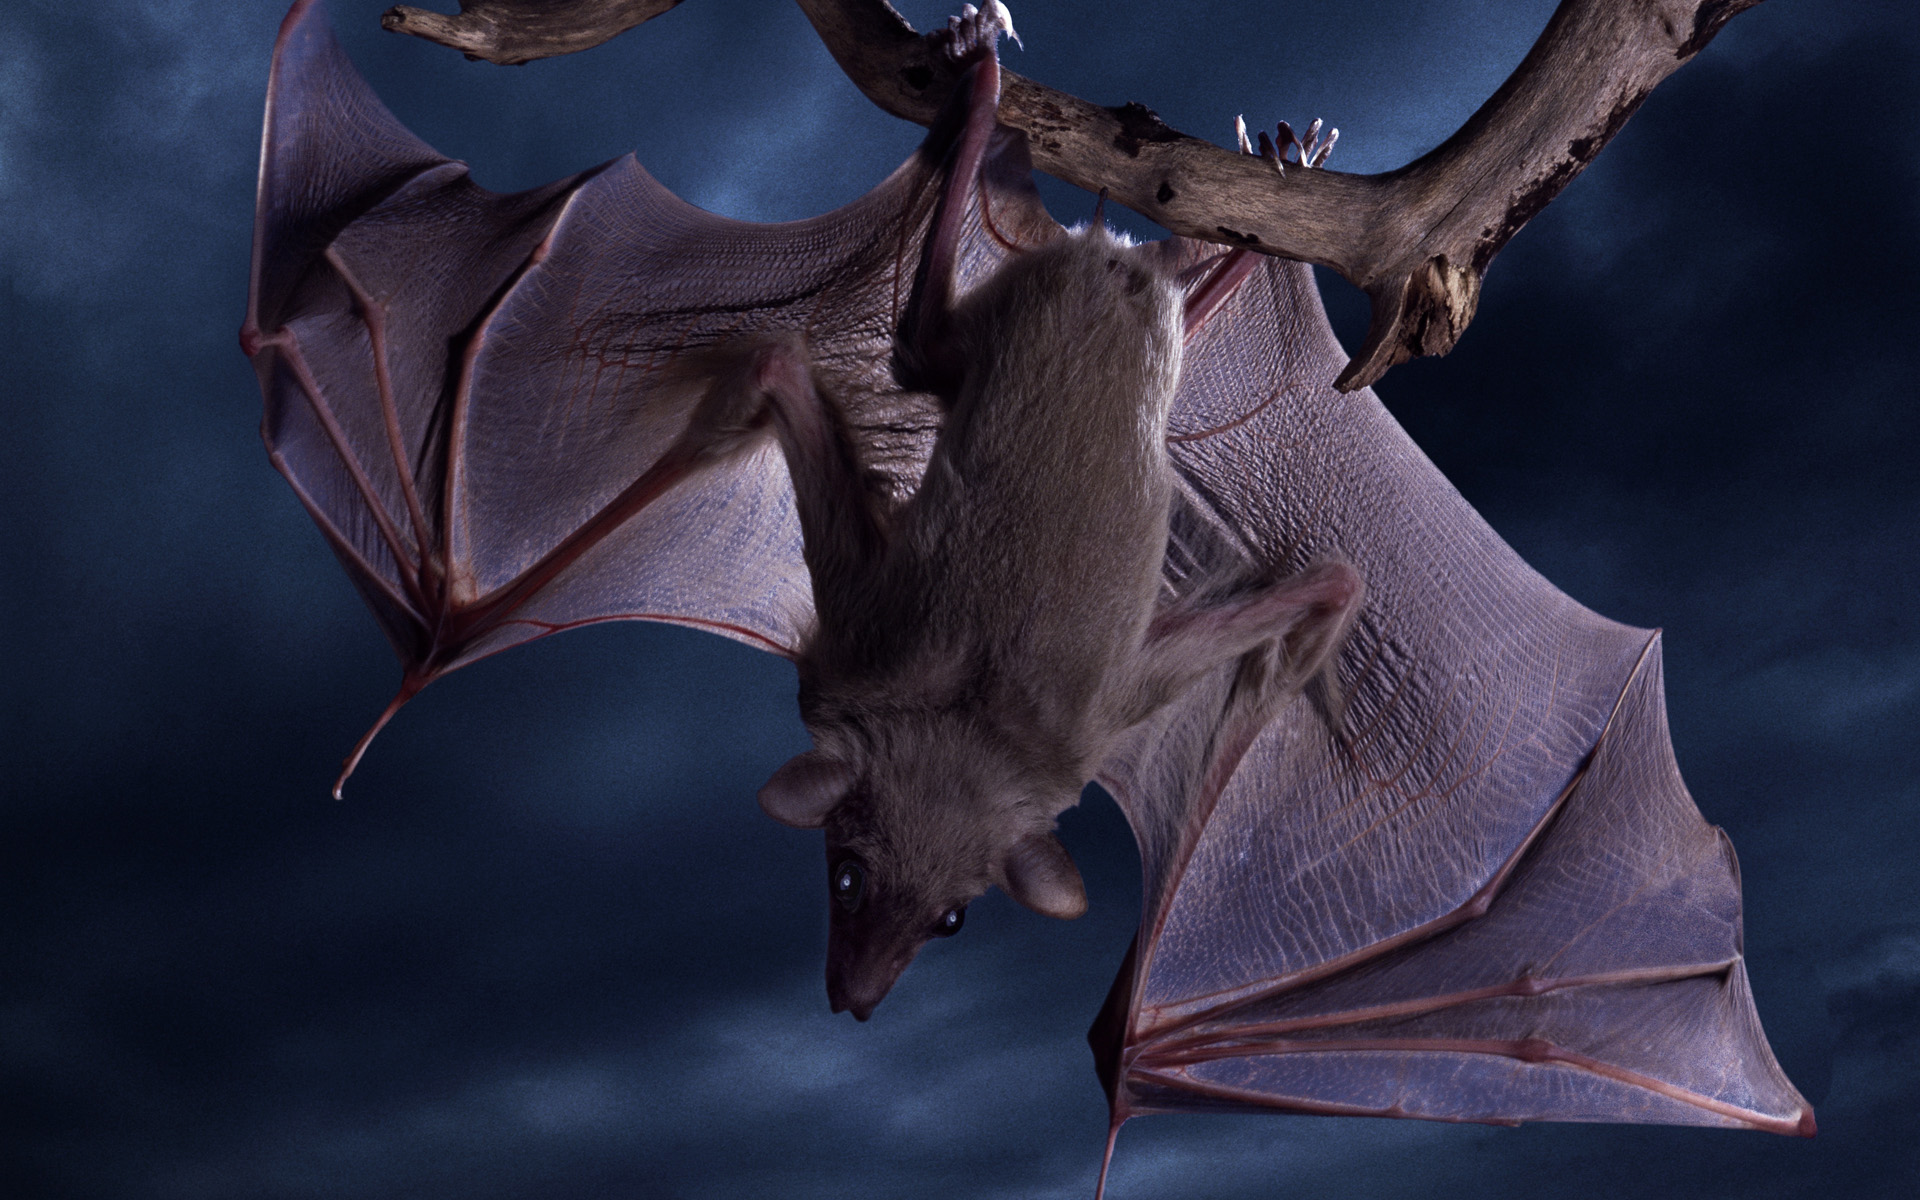 Bat Full Hd Wallpaper And Background Image 1920x1200 HD Wallpapers Download Free Images Wallpaper [1000image.com]